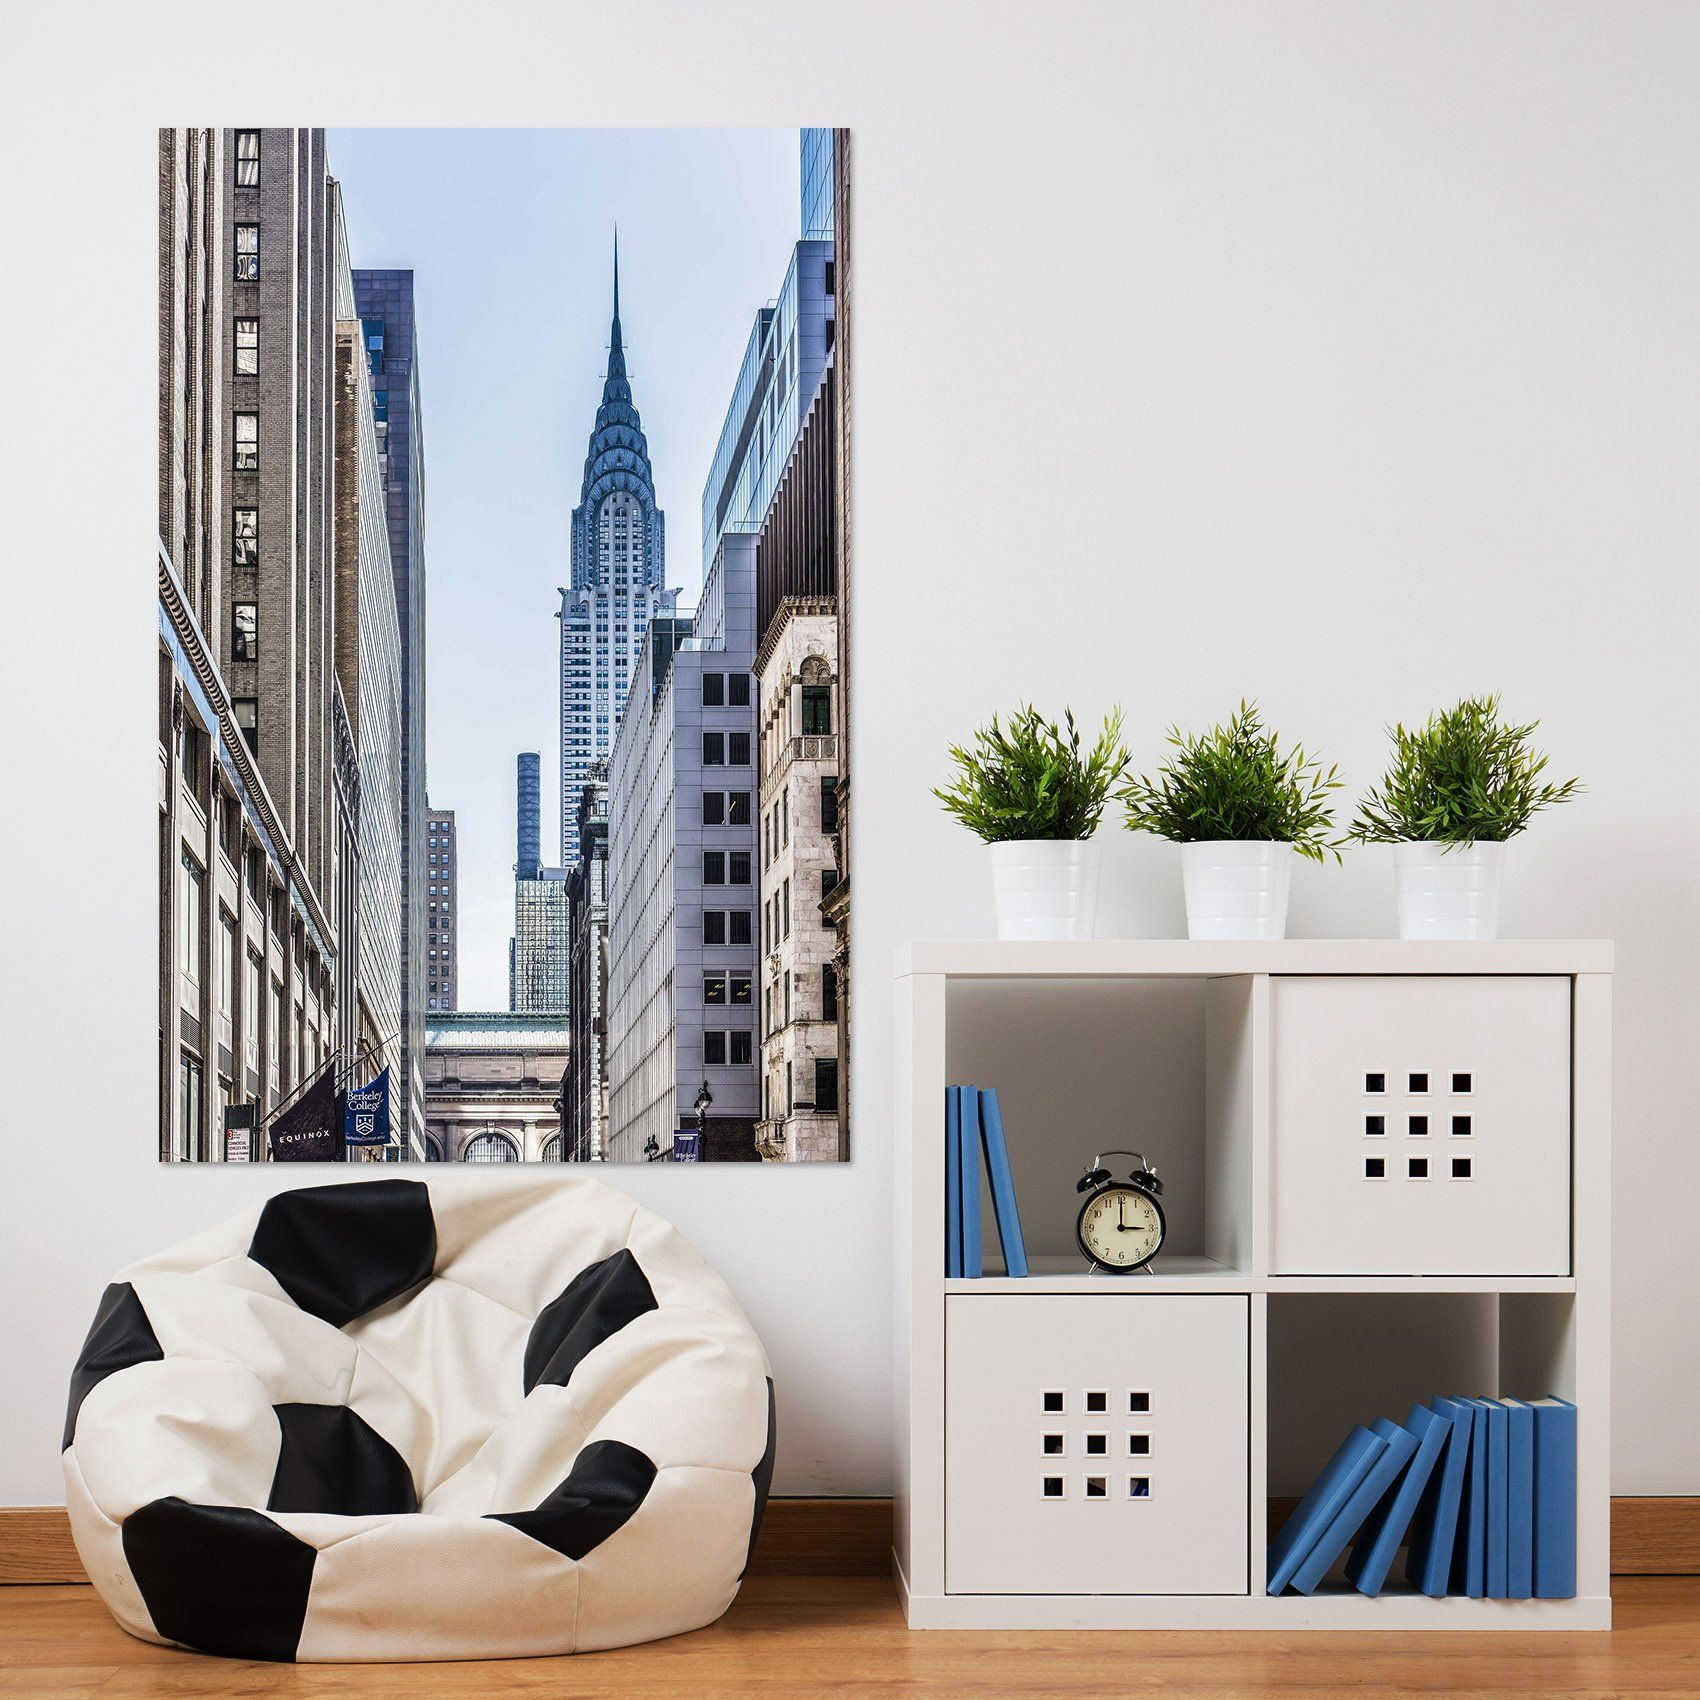 3D Beautiful City 197 Marco Carmassi Wall Sticker